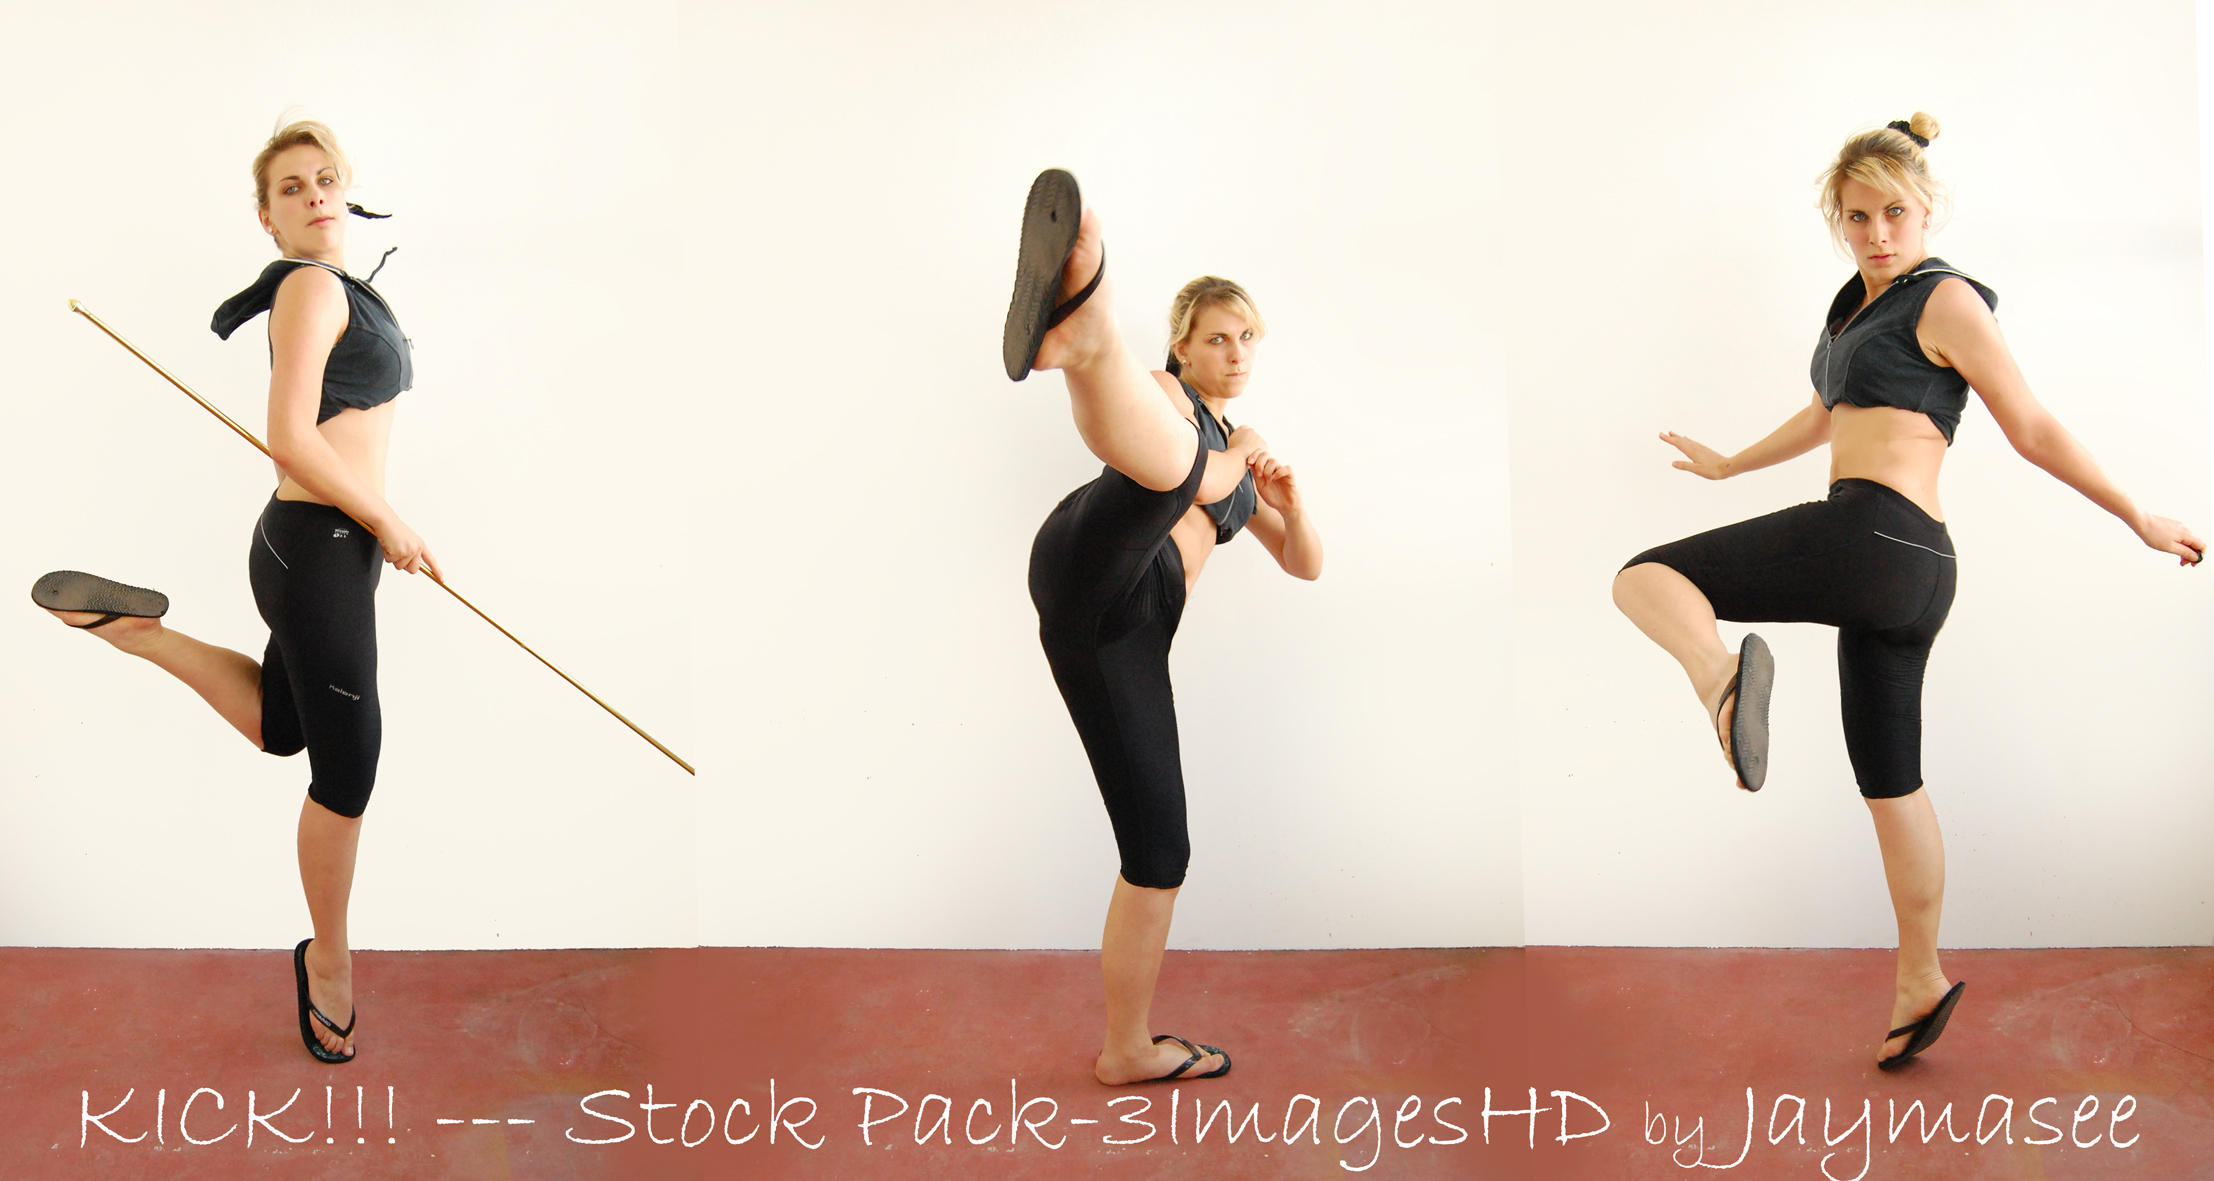 Action Pose Serie - Kick by Jaymasee